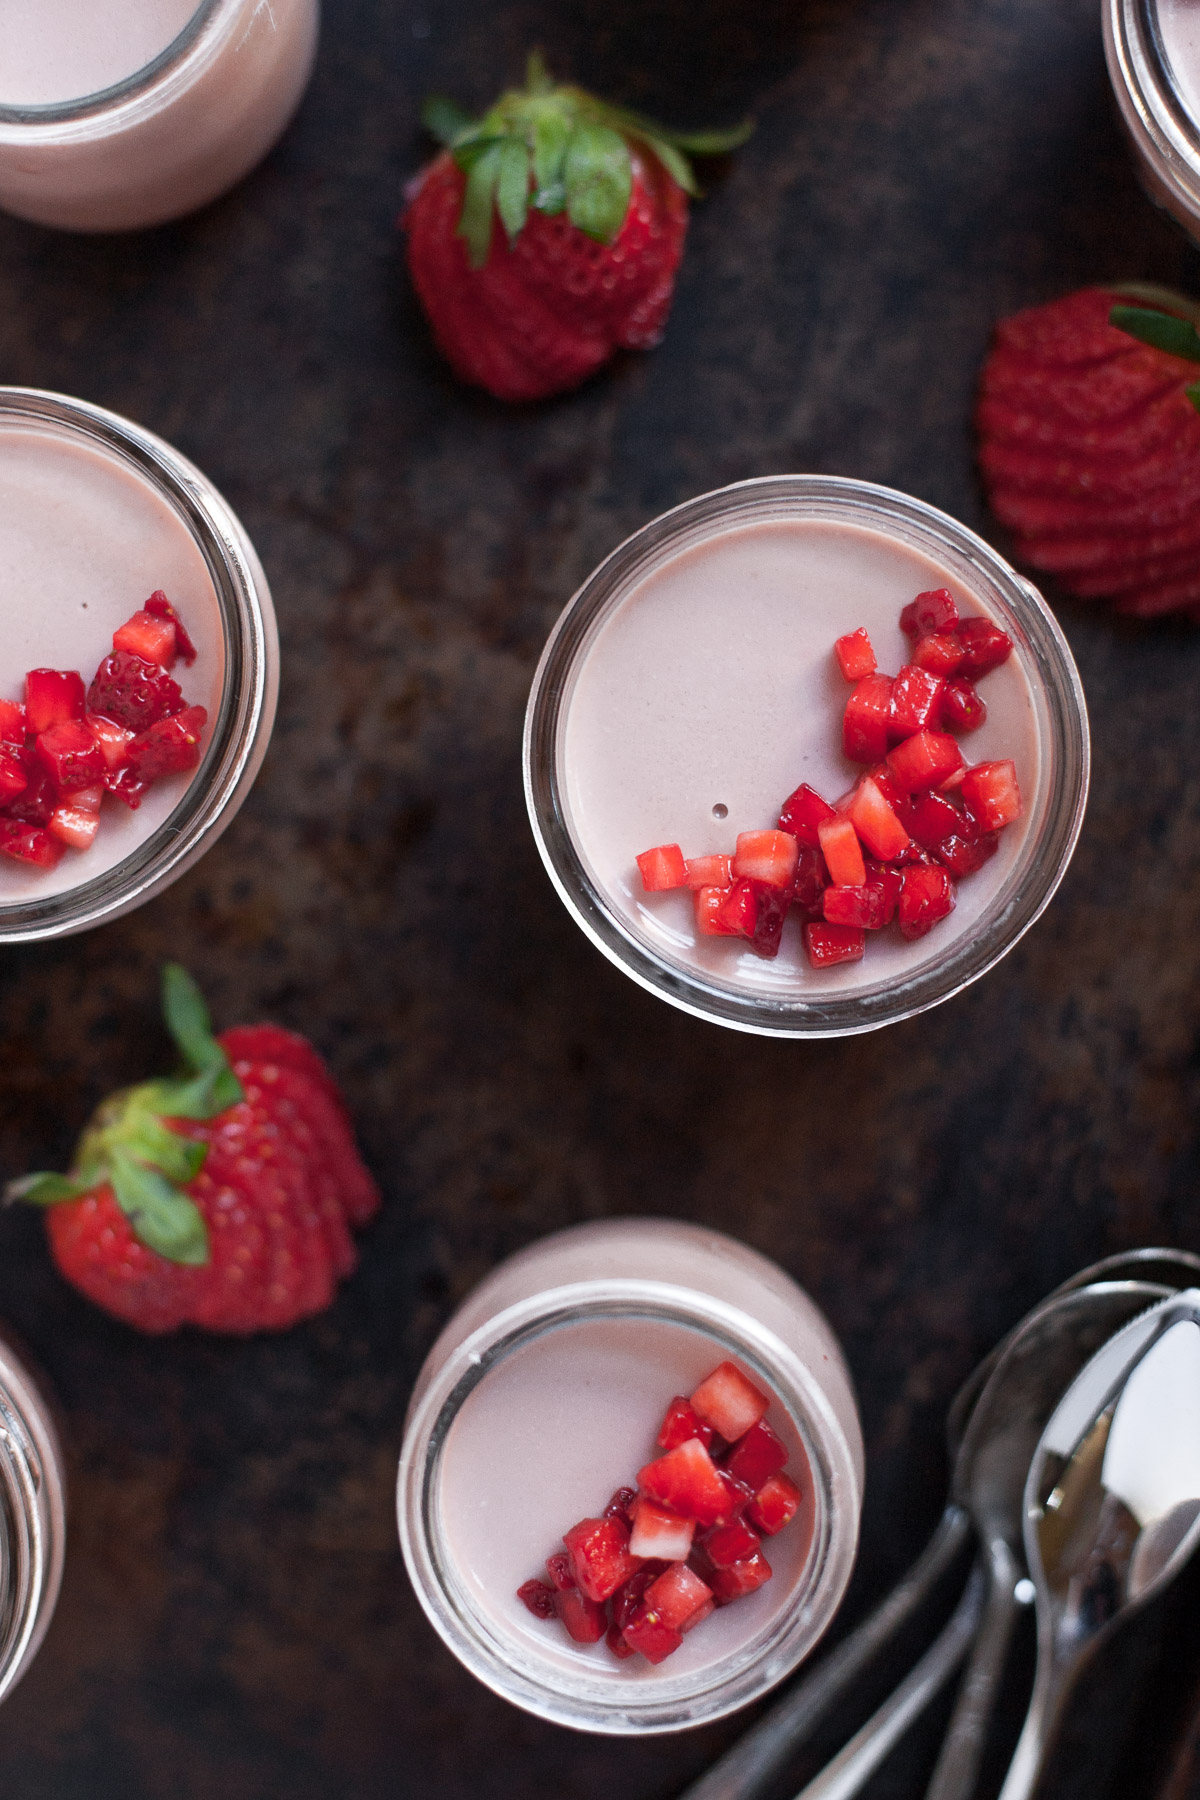 Strawberry Panna Cotta with Balsamic Vinegar (Paleo and dairy-free options)